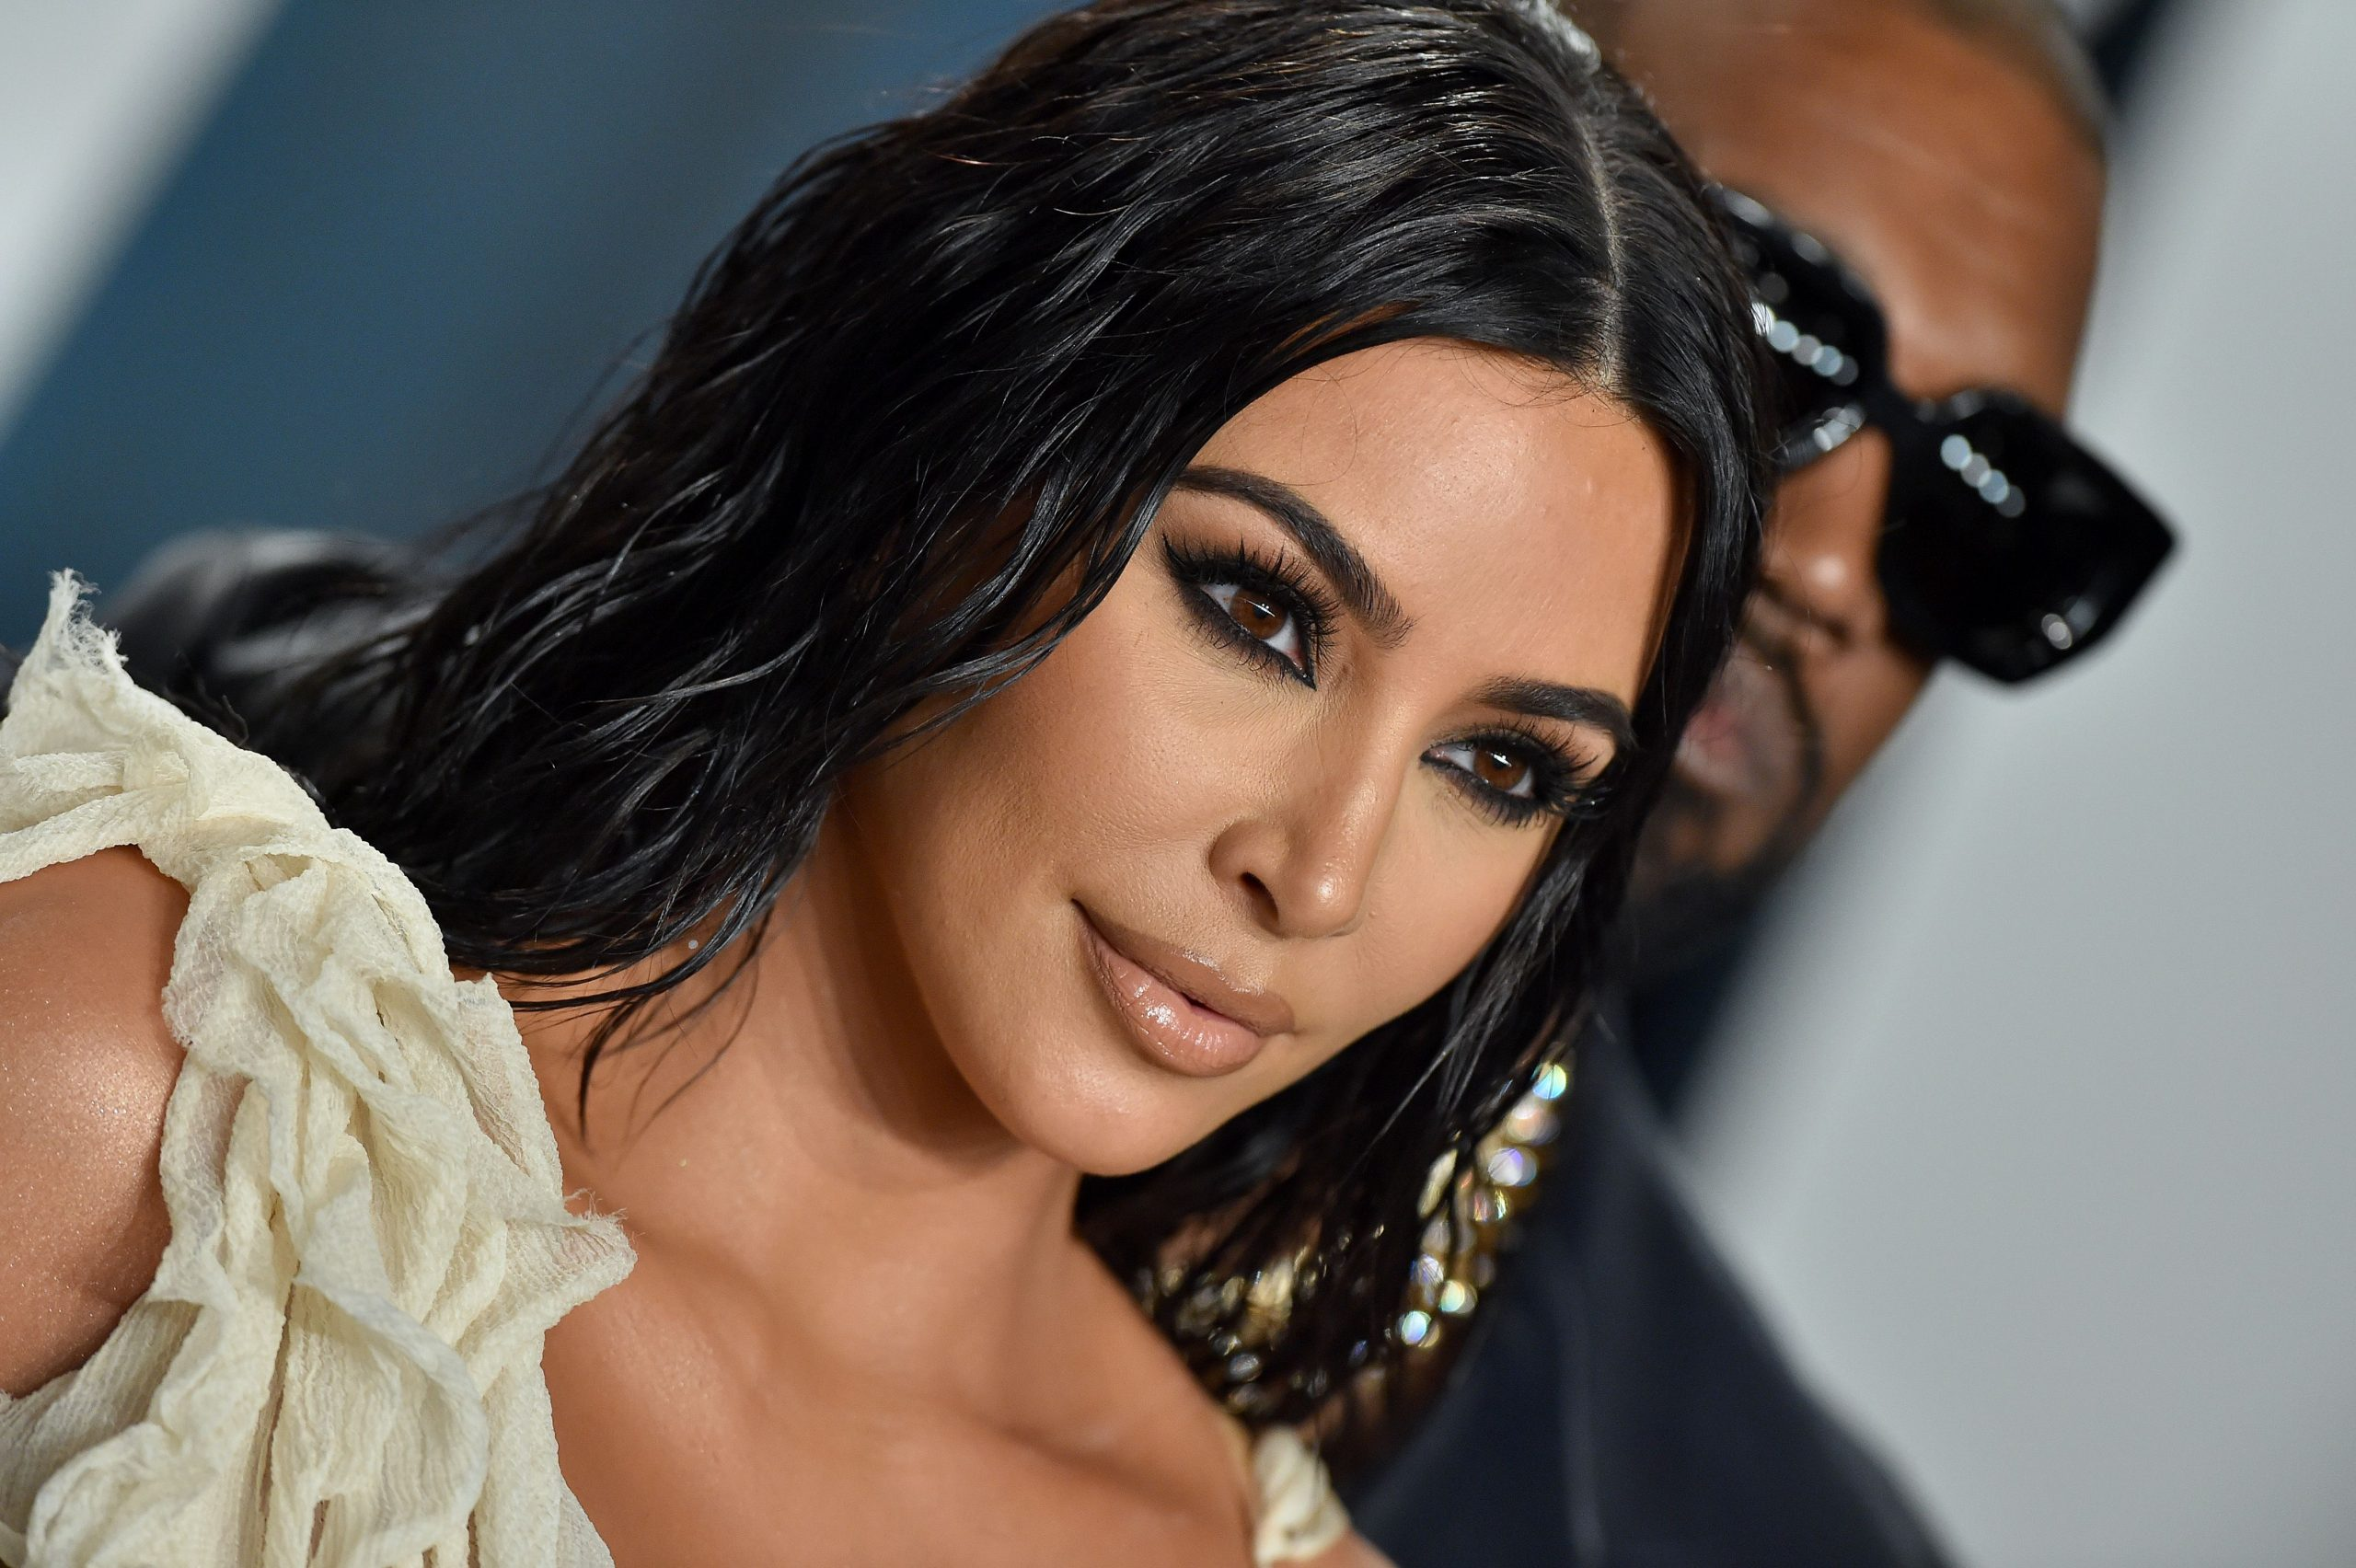 Coty has invested in both Kim Kardashian's KKW Beauty and Kylie Jenner's Kylie Cosmetics